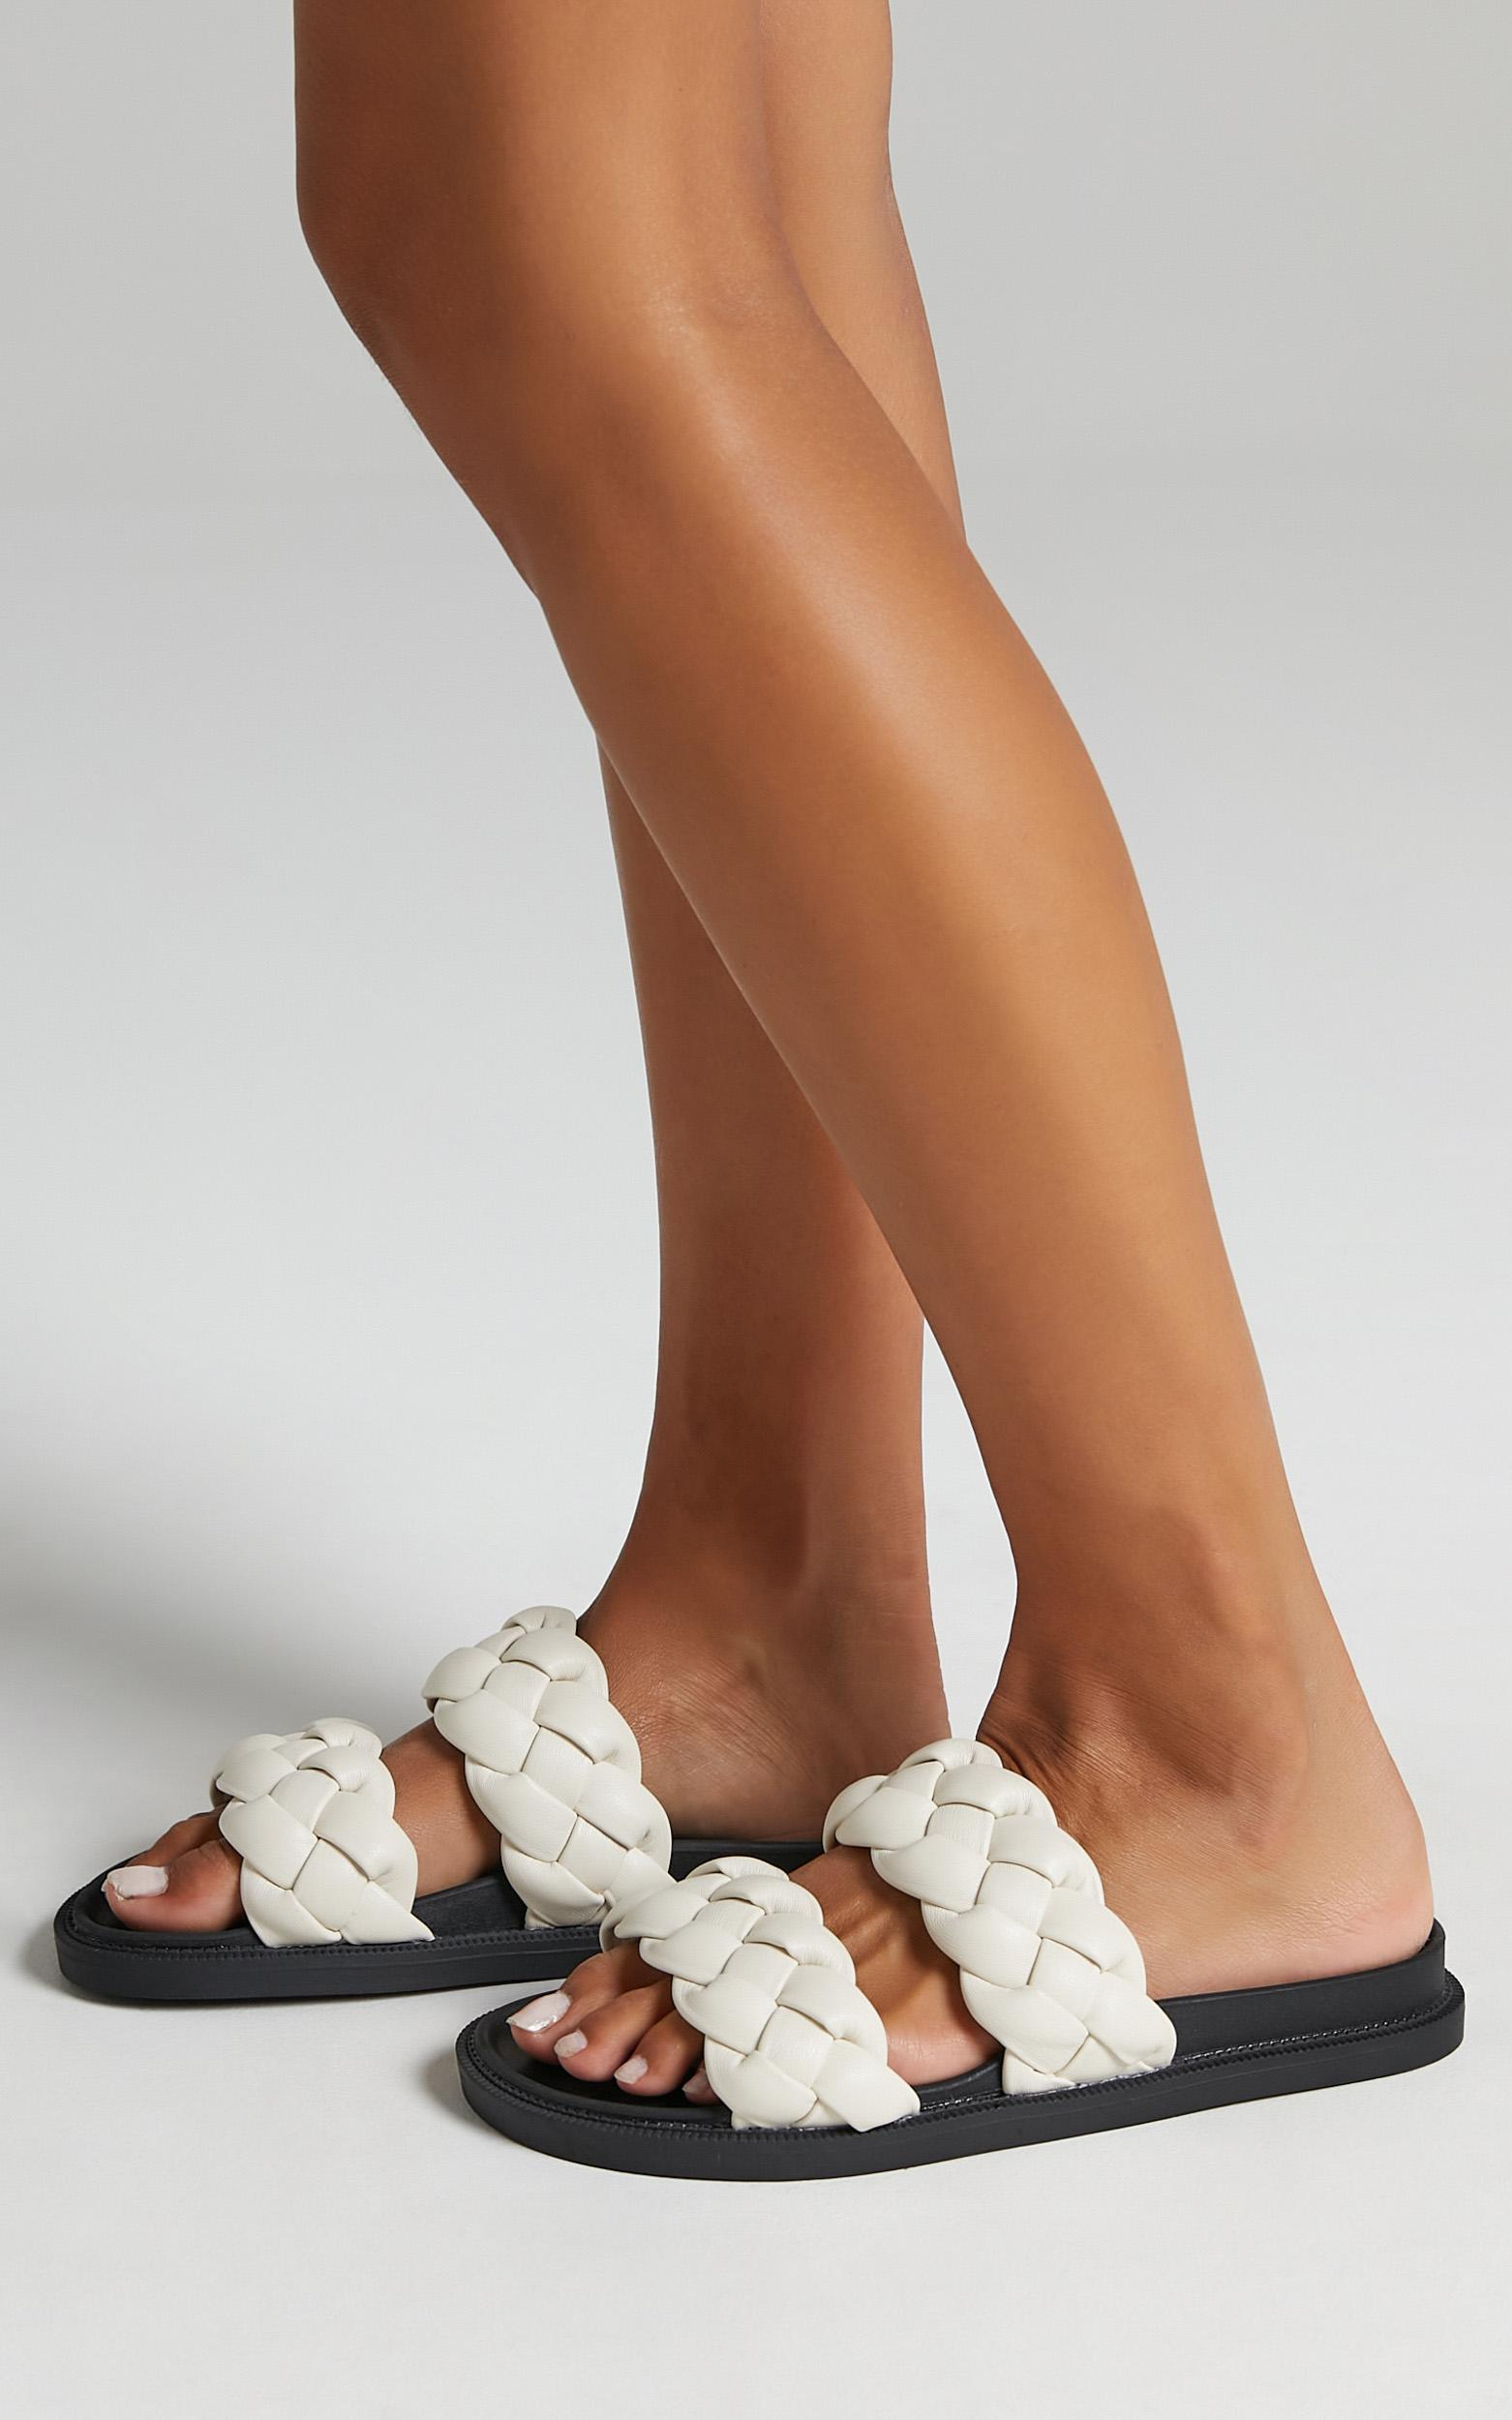 Therapy - Elle Sandals in Cream - 05, CRE2, hi-res image number null